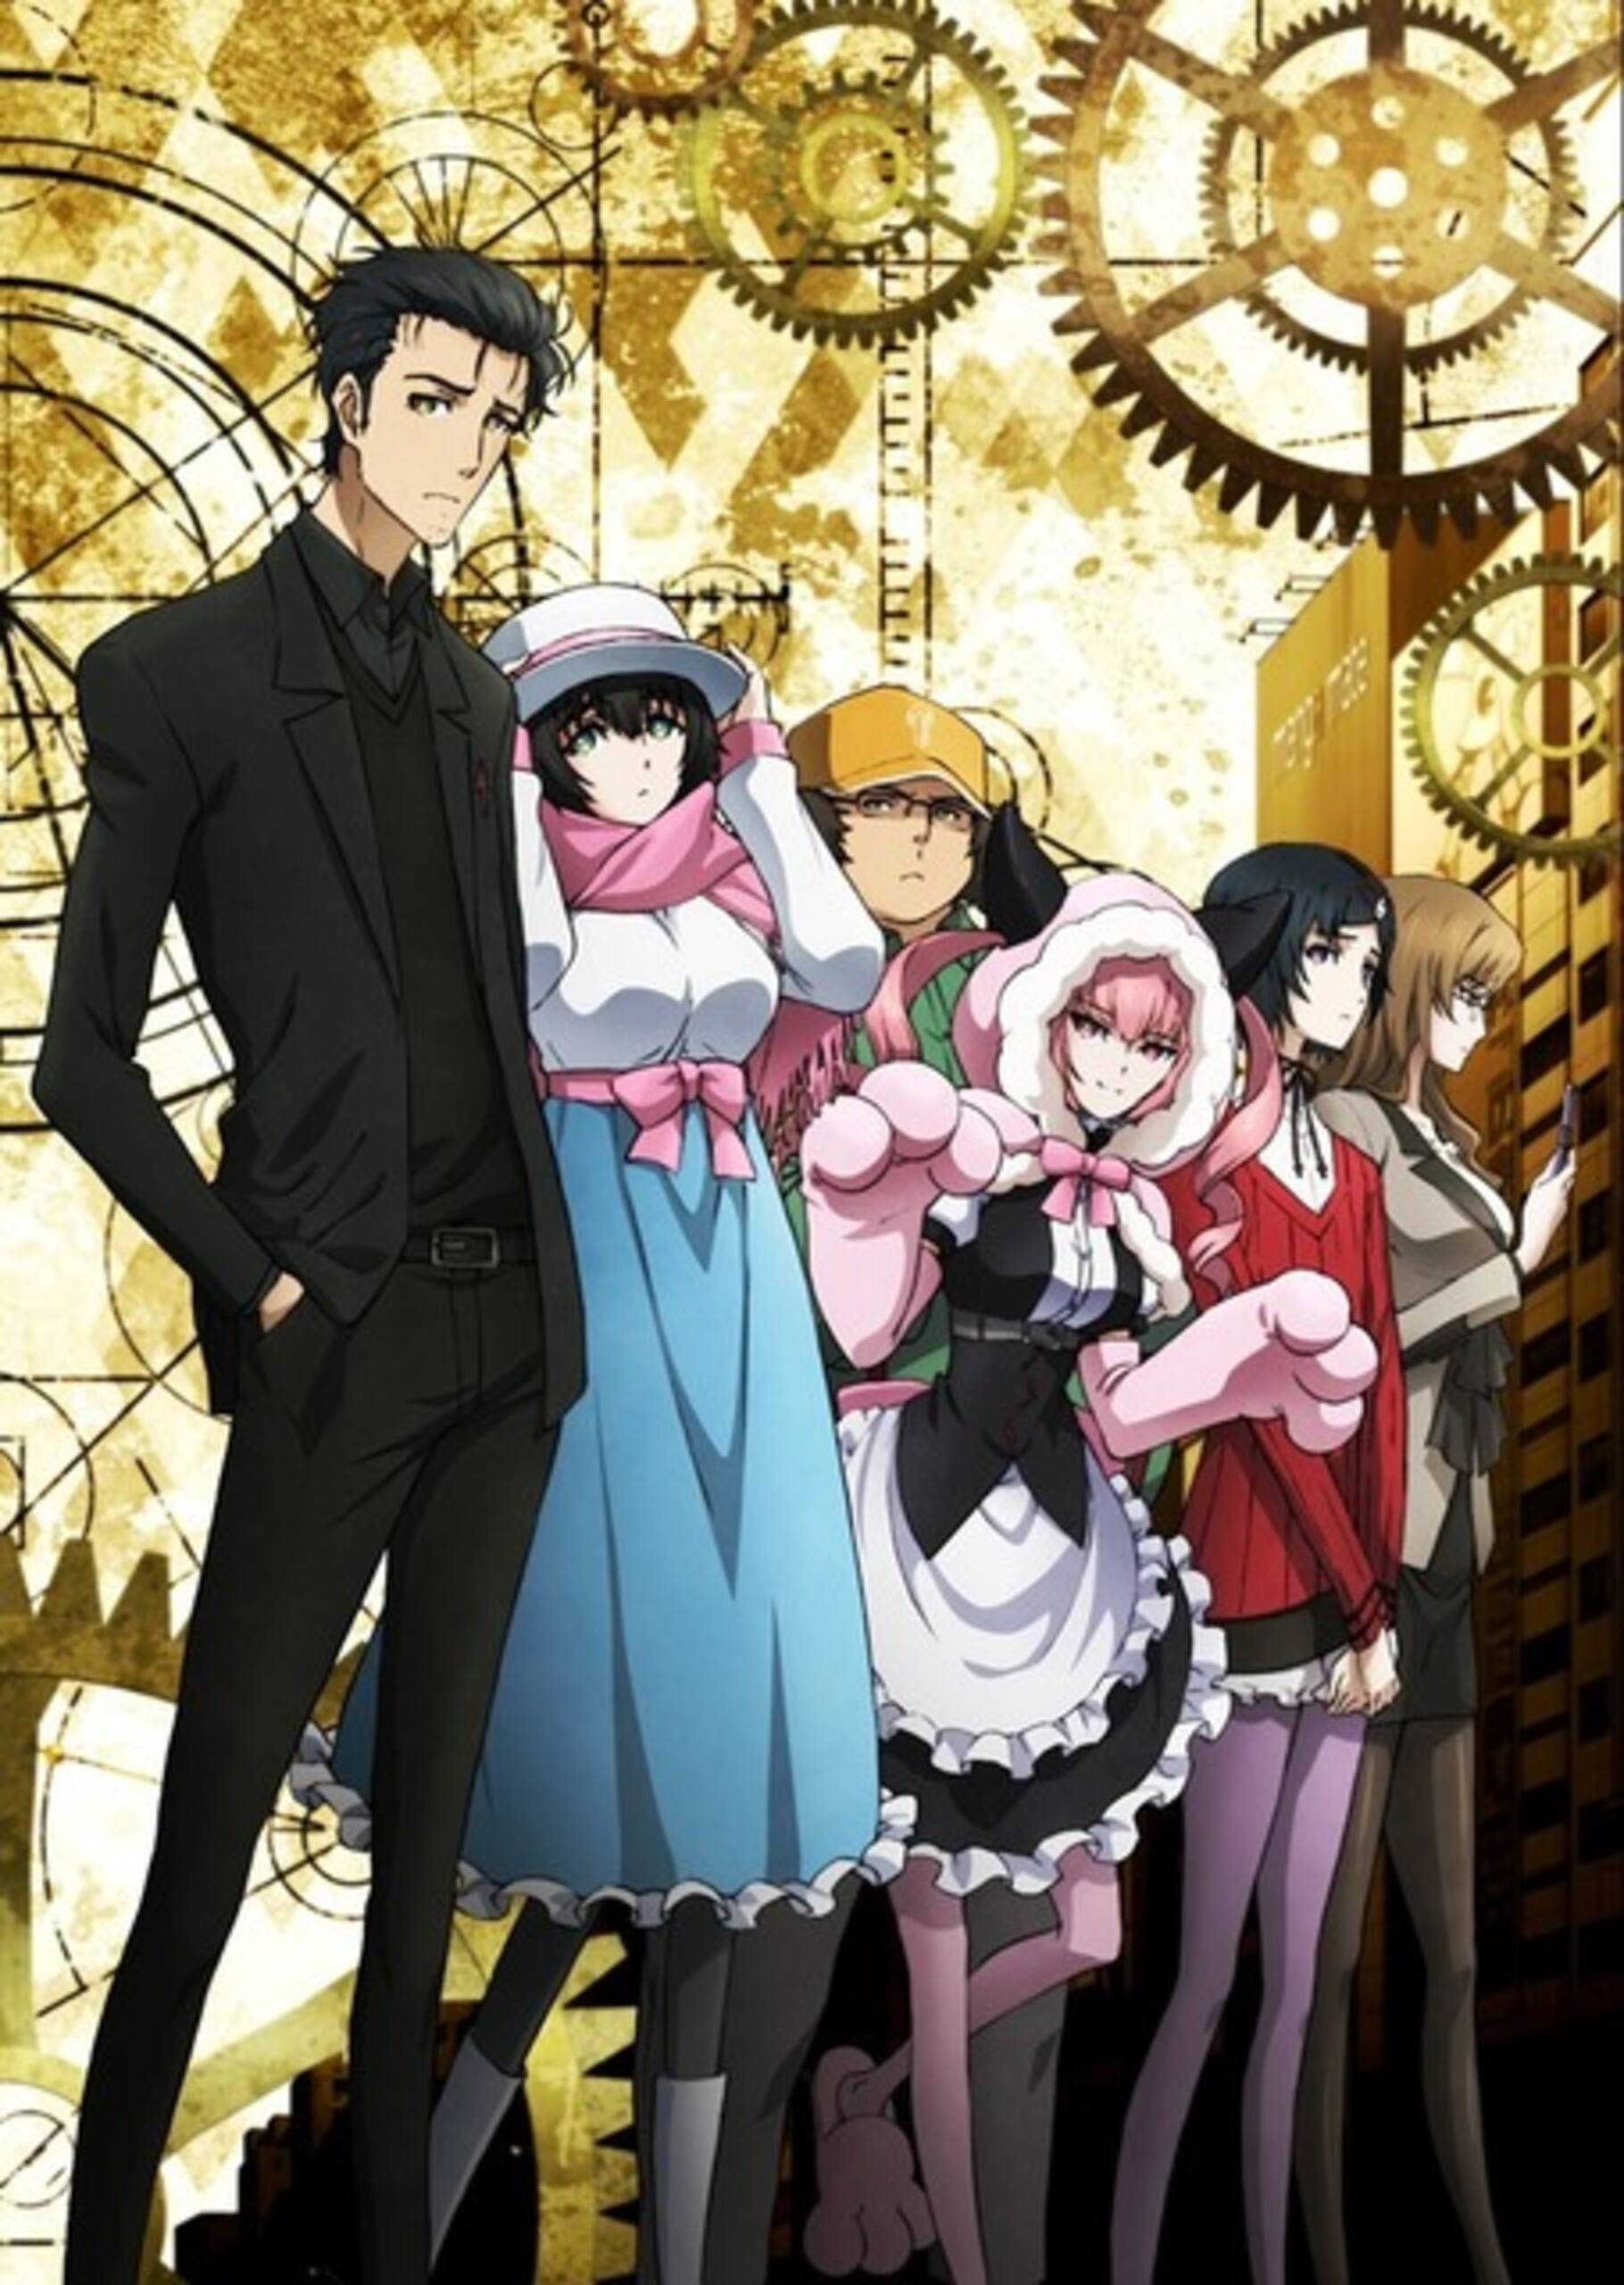 Image result for steins gate 0 key visual